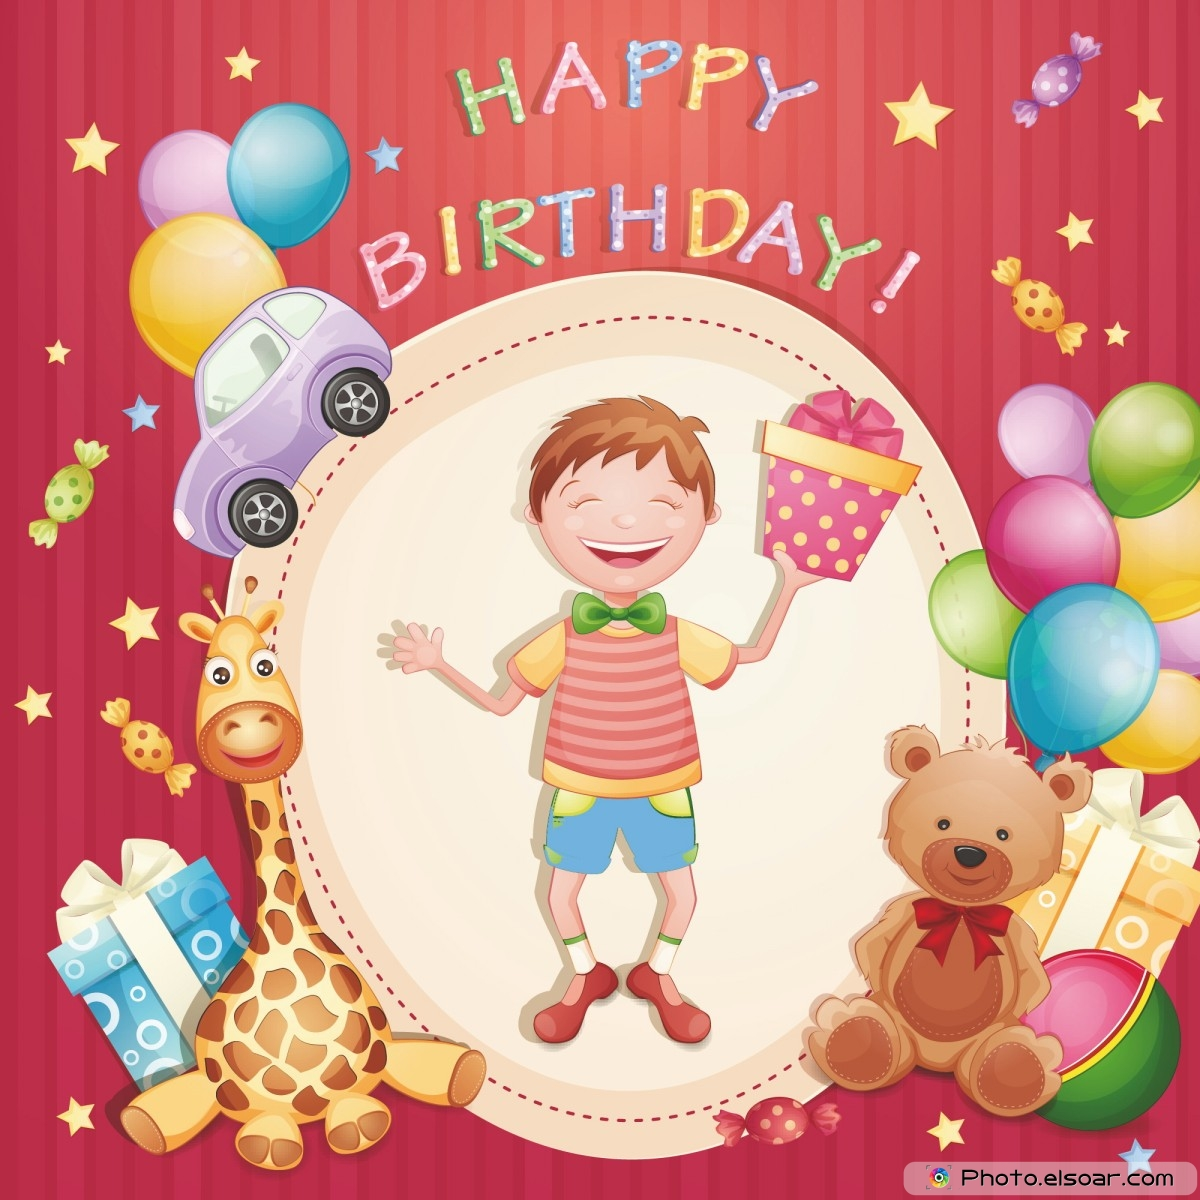 Free Unique Happy Birthday Cards With Many Elements Elsoar – Birthday Boy Cards